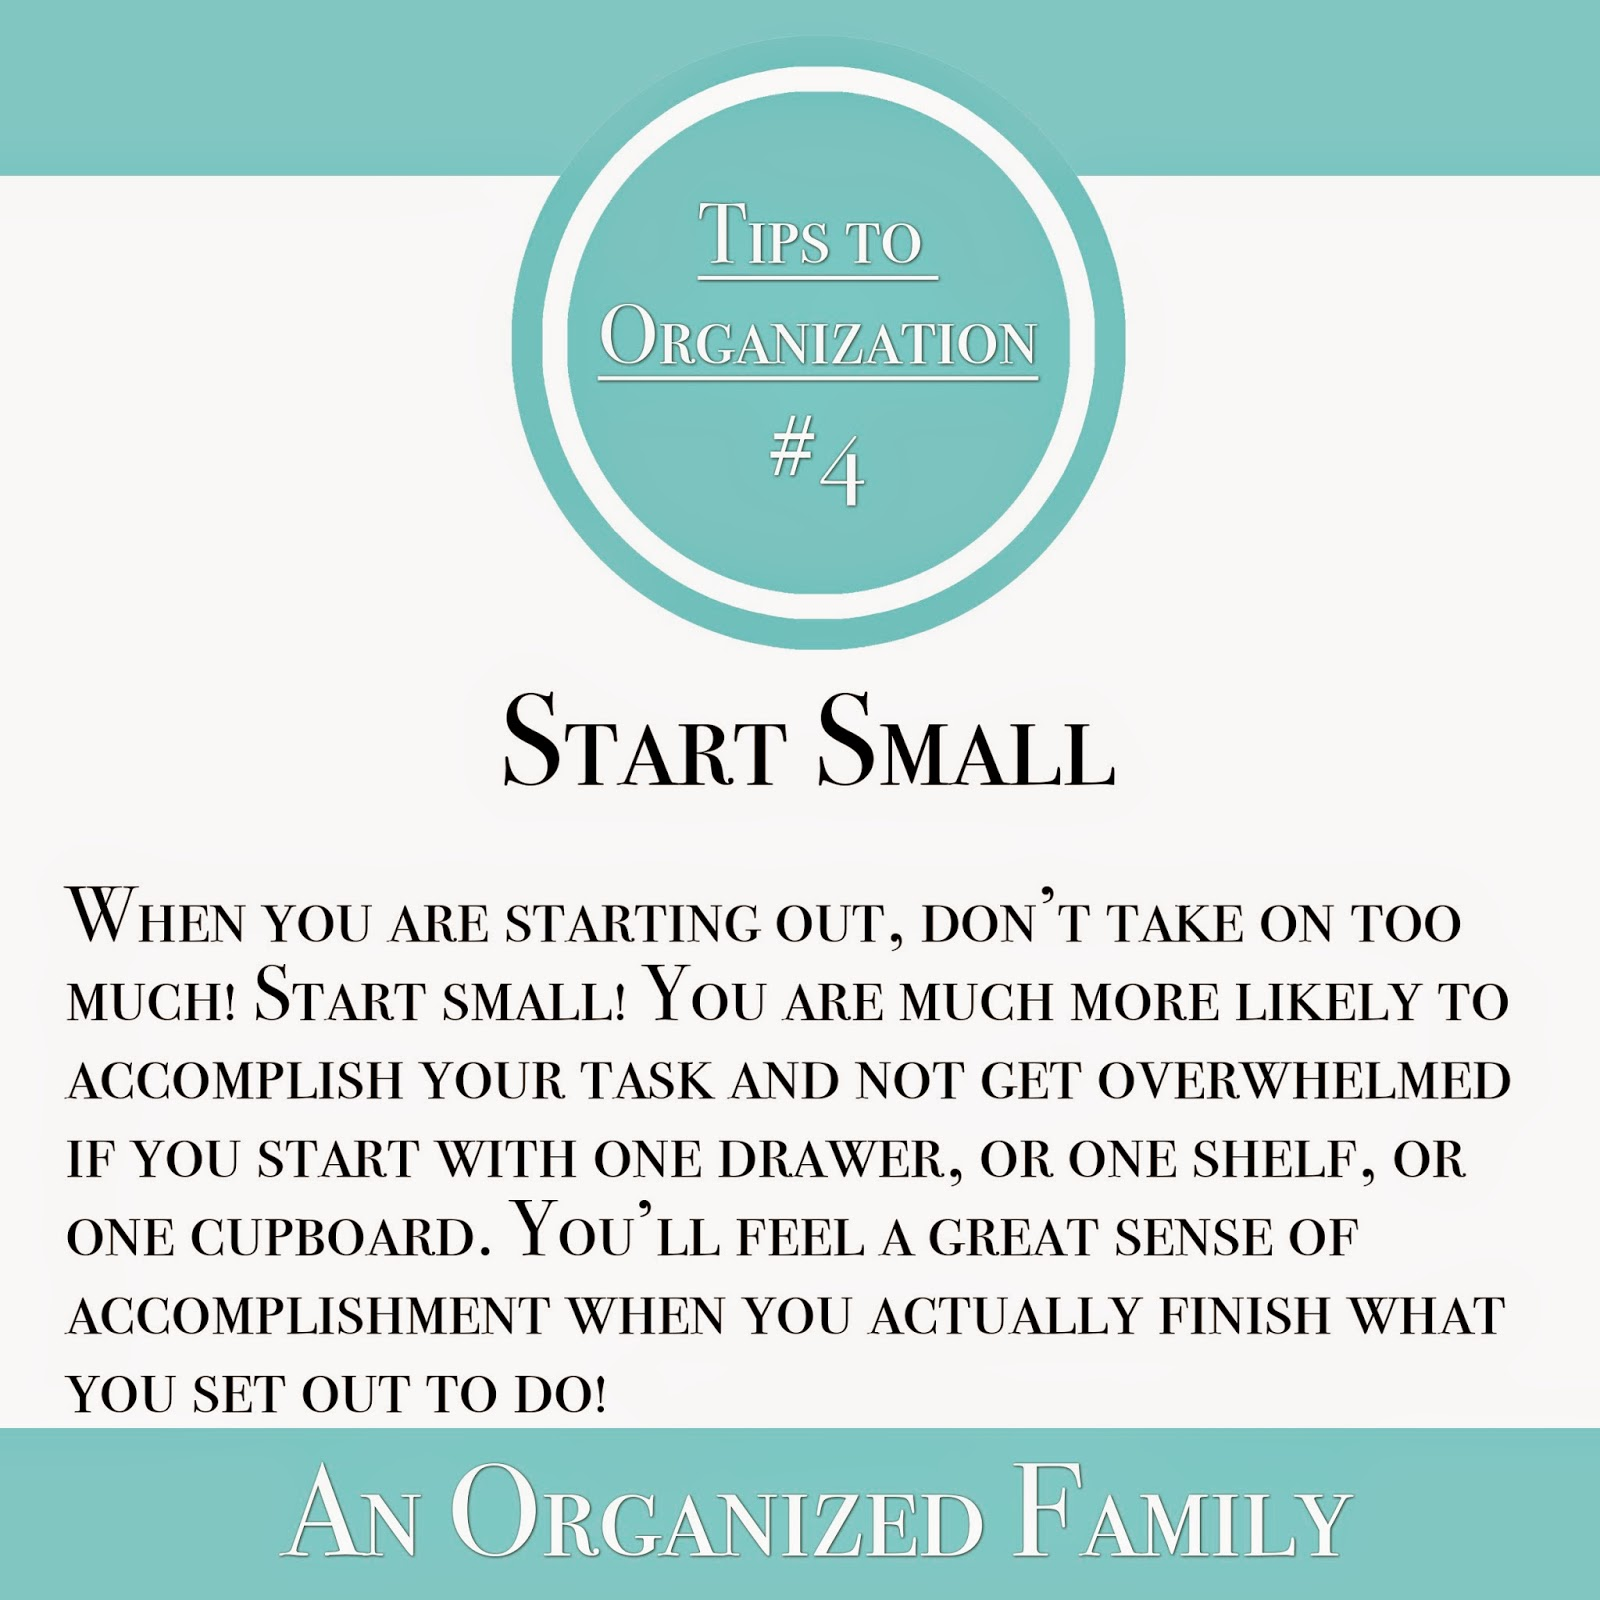 An Organized Family - tips to organization